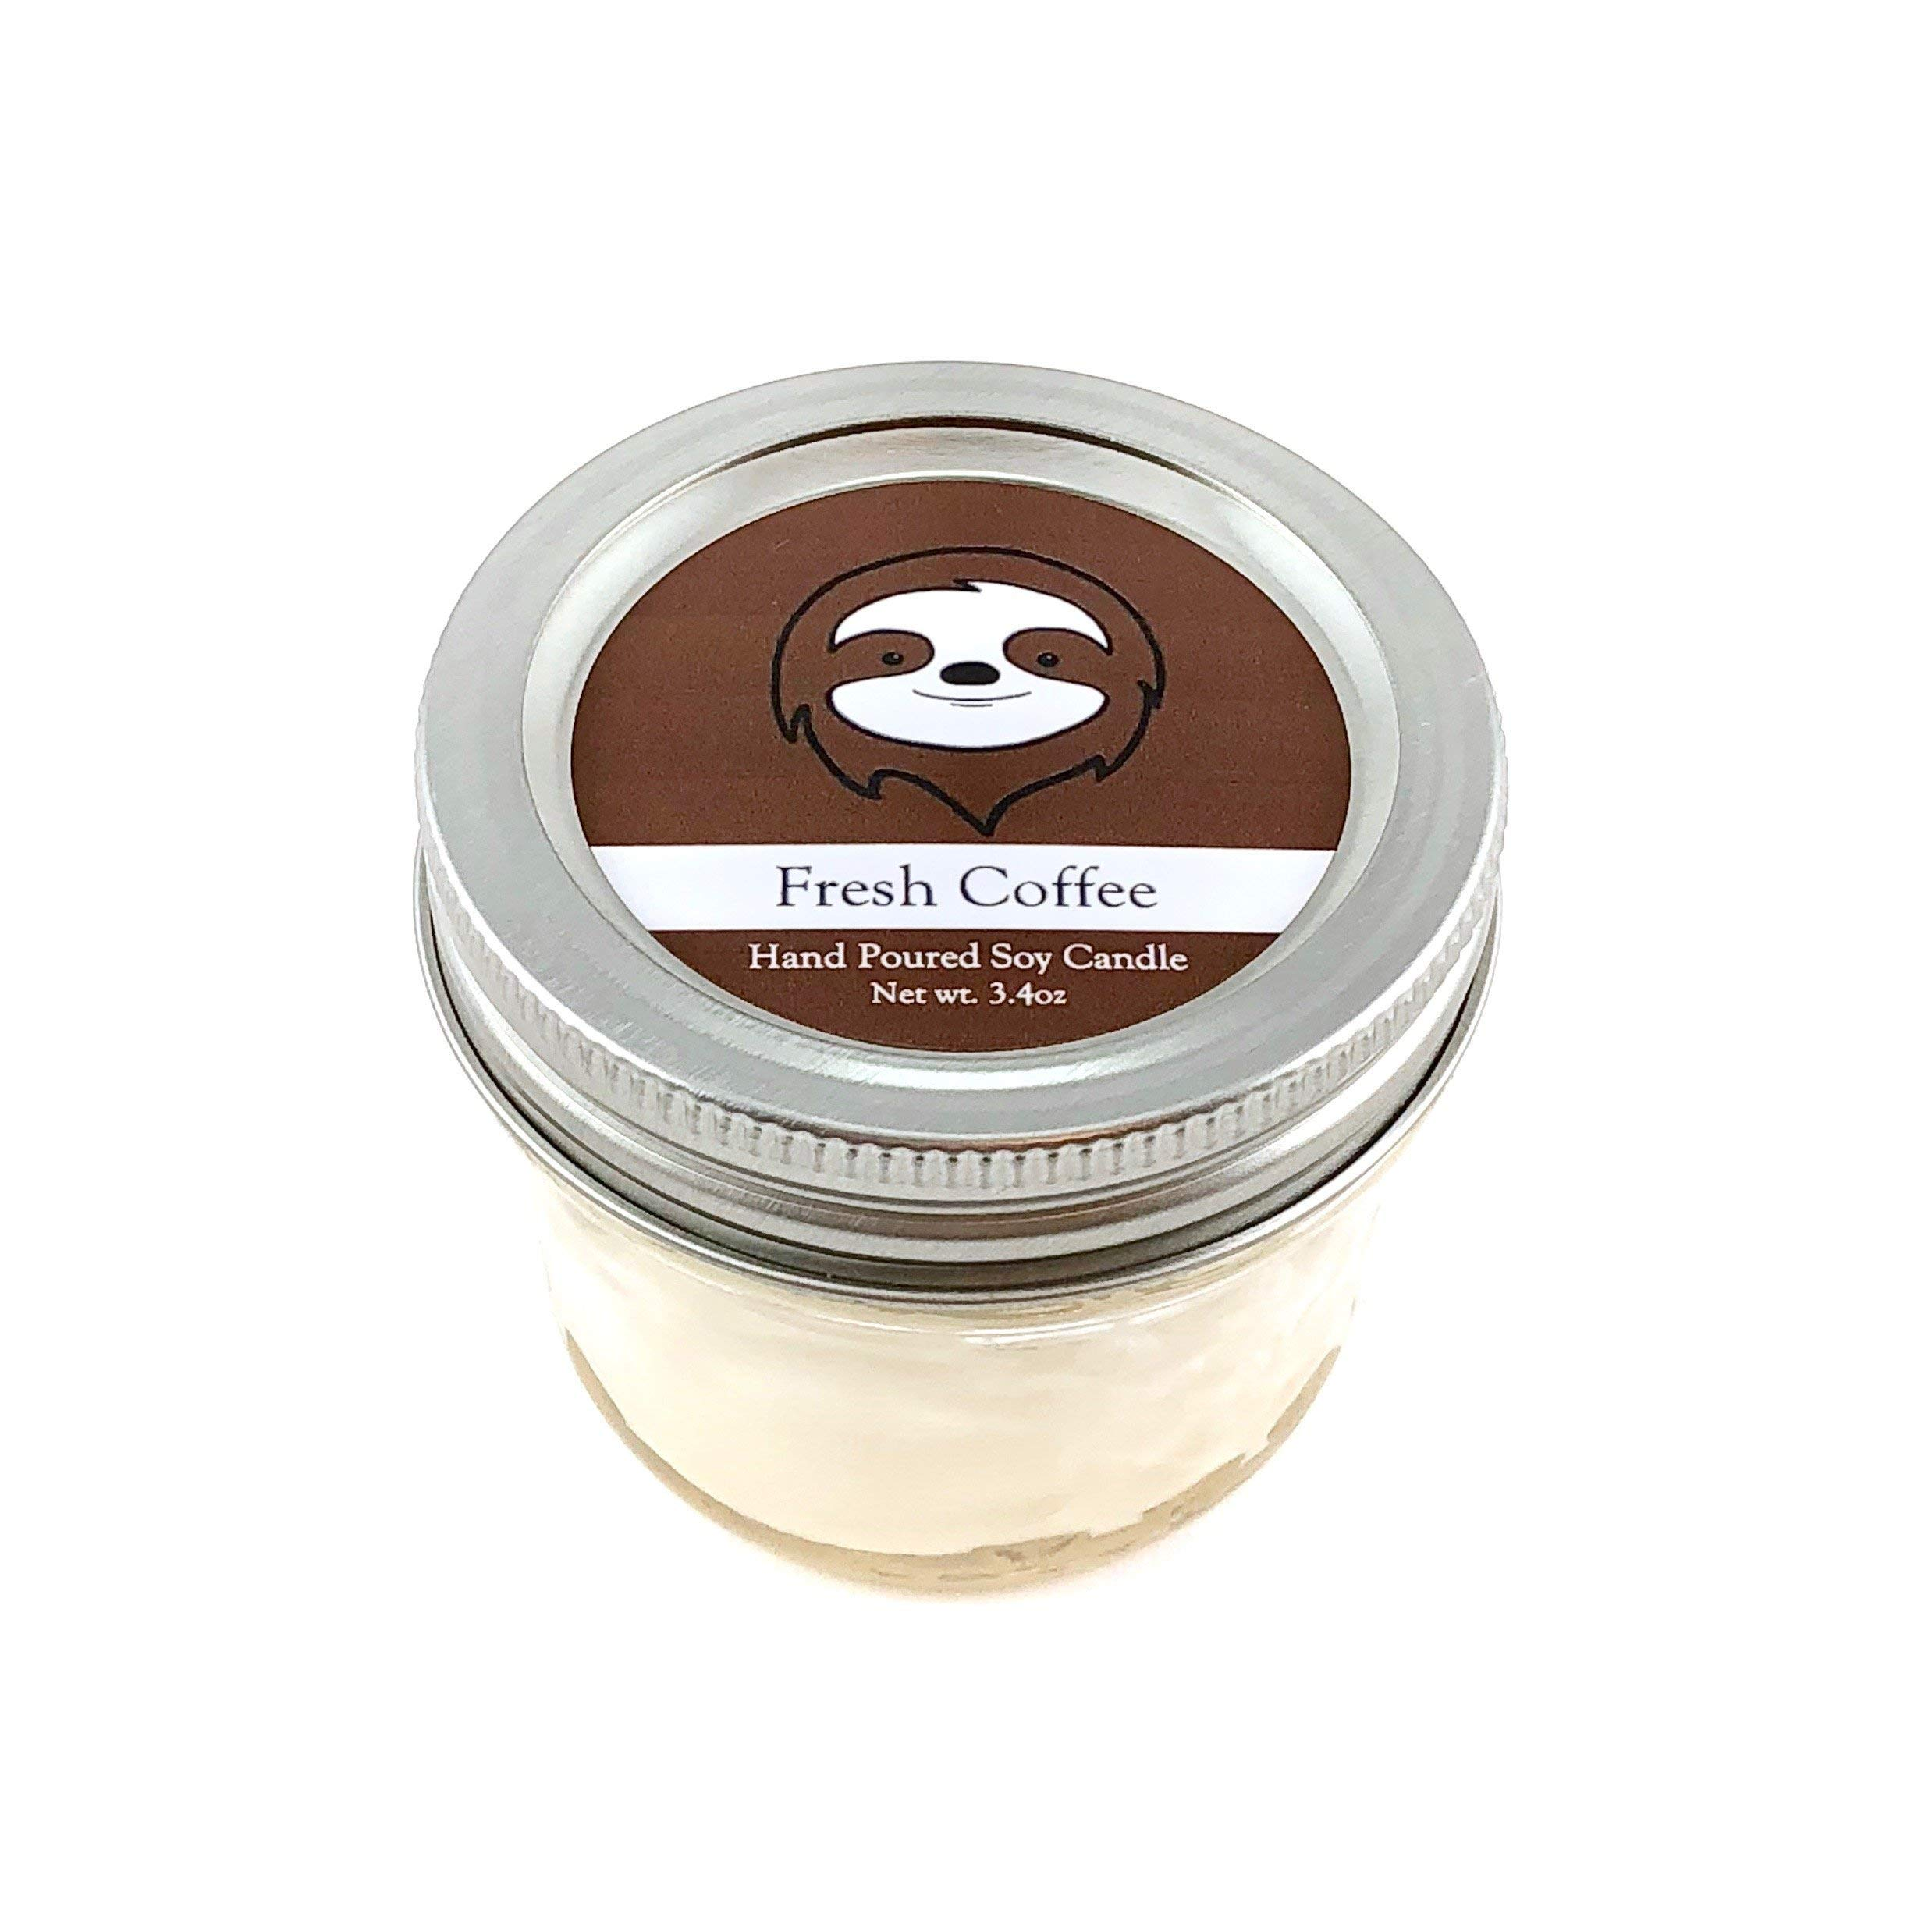 Sloth Conservation Candle - Coffee Scent | Wildlife Conservation All-Natural Vegan Soy Candle